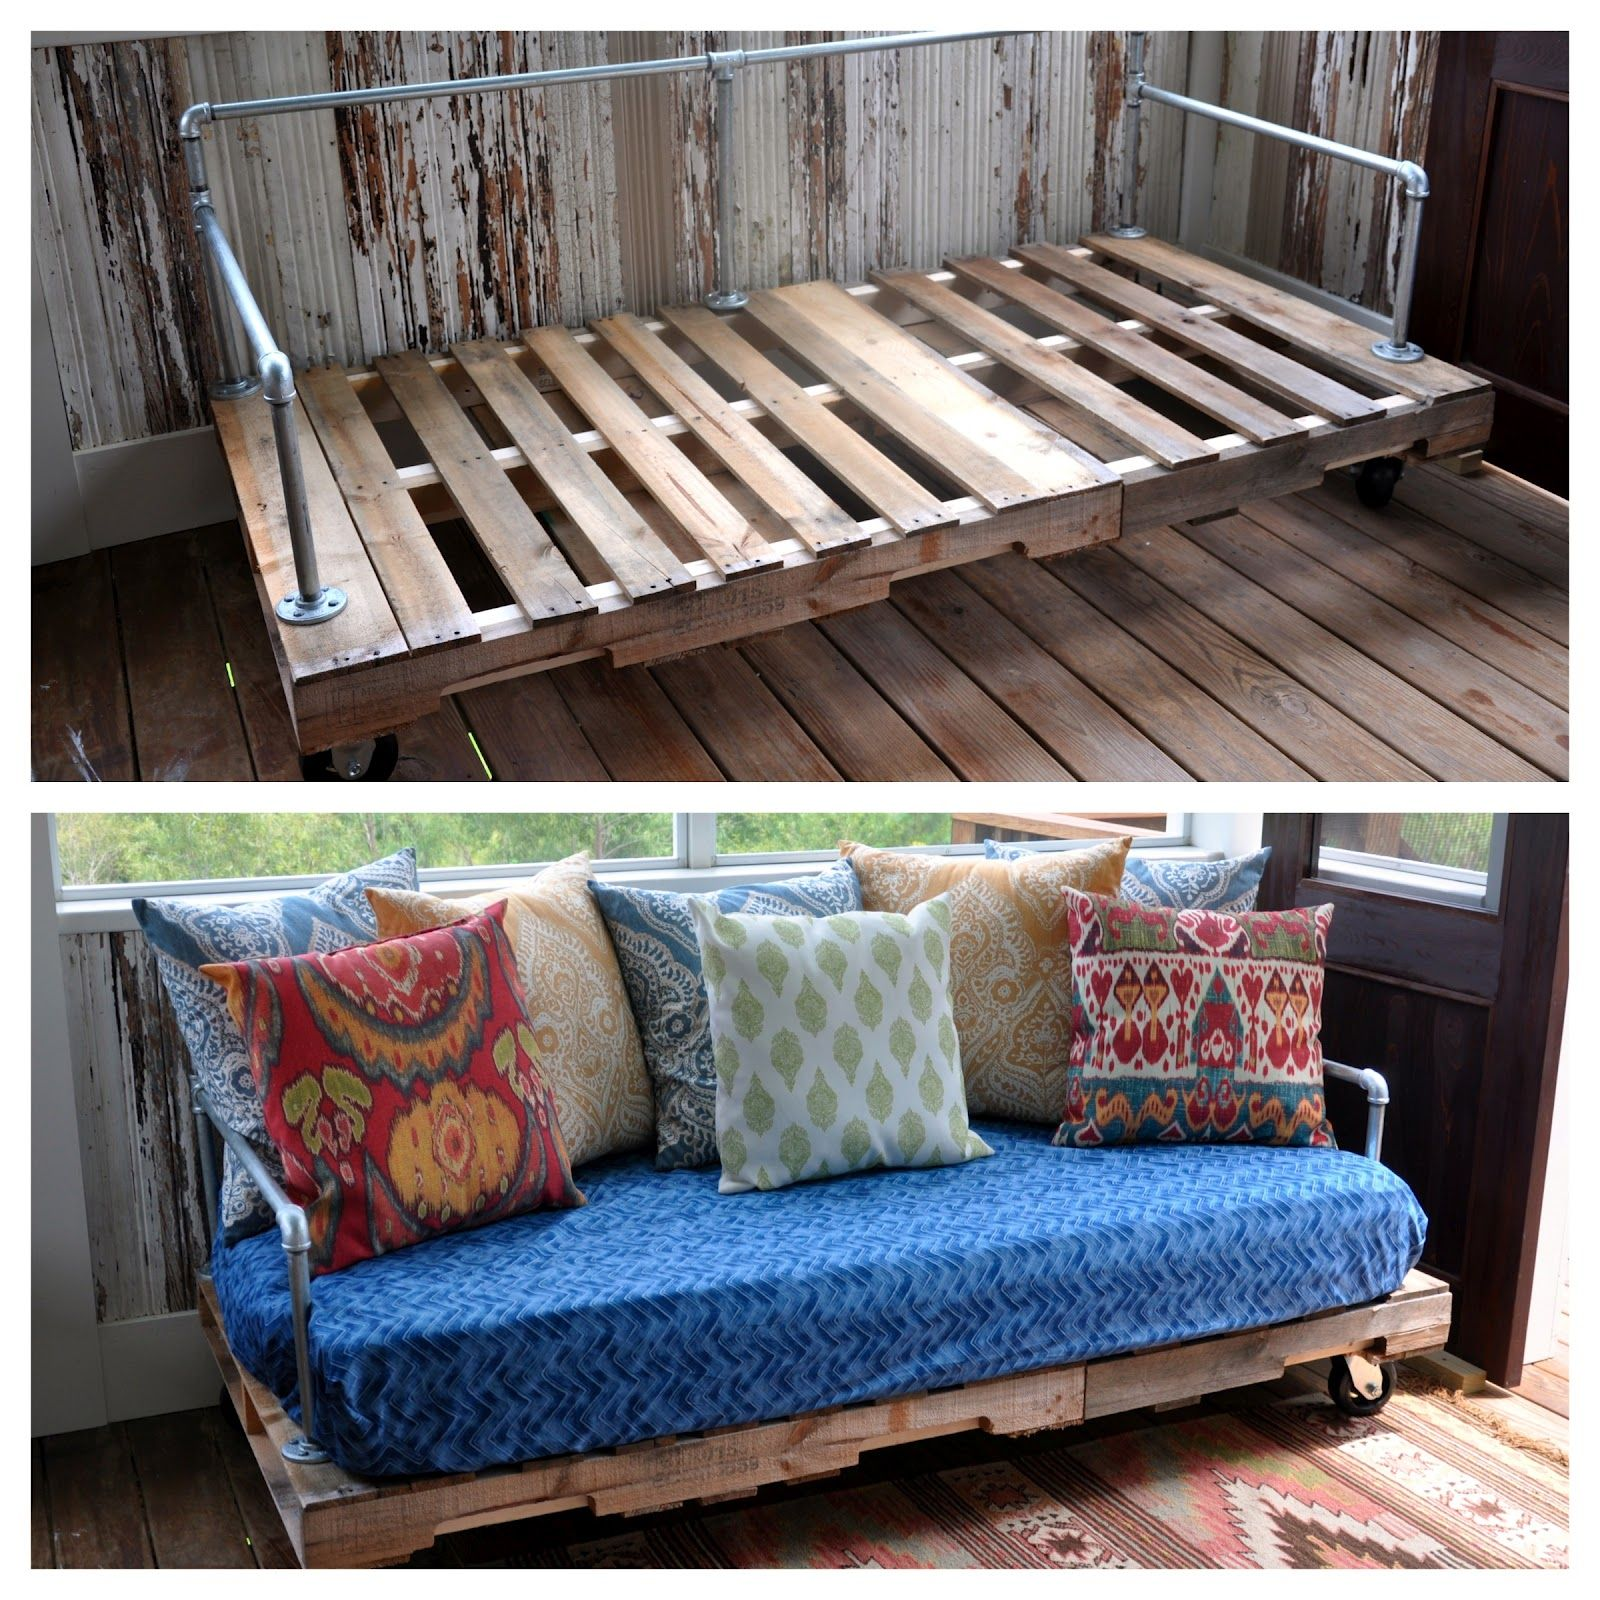 Pallet patio table diy - Pallet Couch Mi Proyecto De Cama Pinterest Pinterest Projects And Pallets